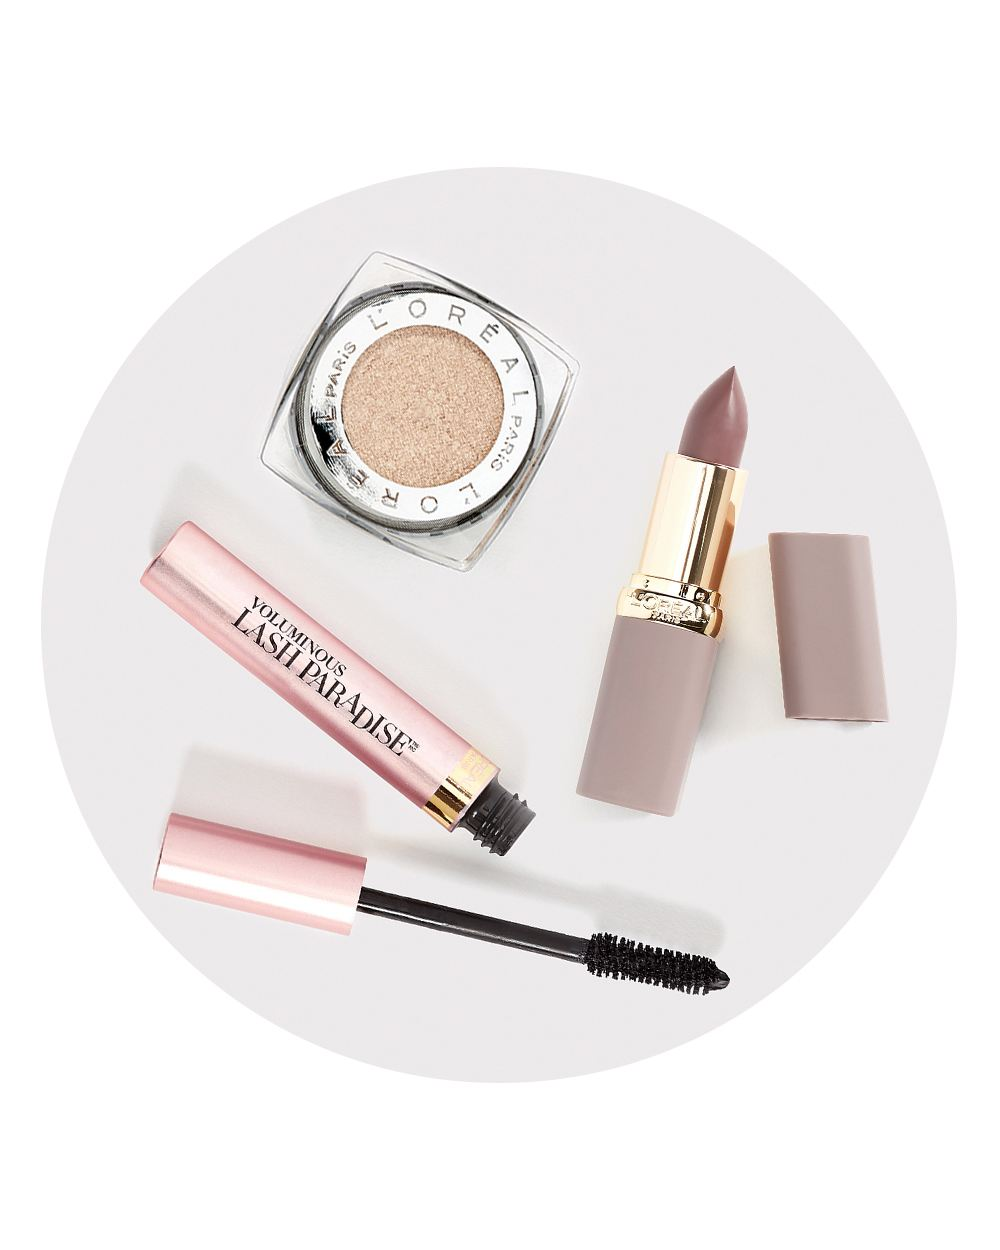 L'Oréal Paris X RW&CO. - ''Belle de Jour'' make-up kit